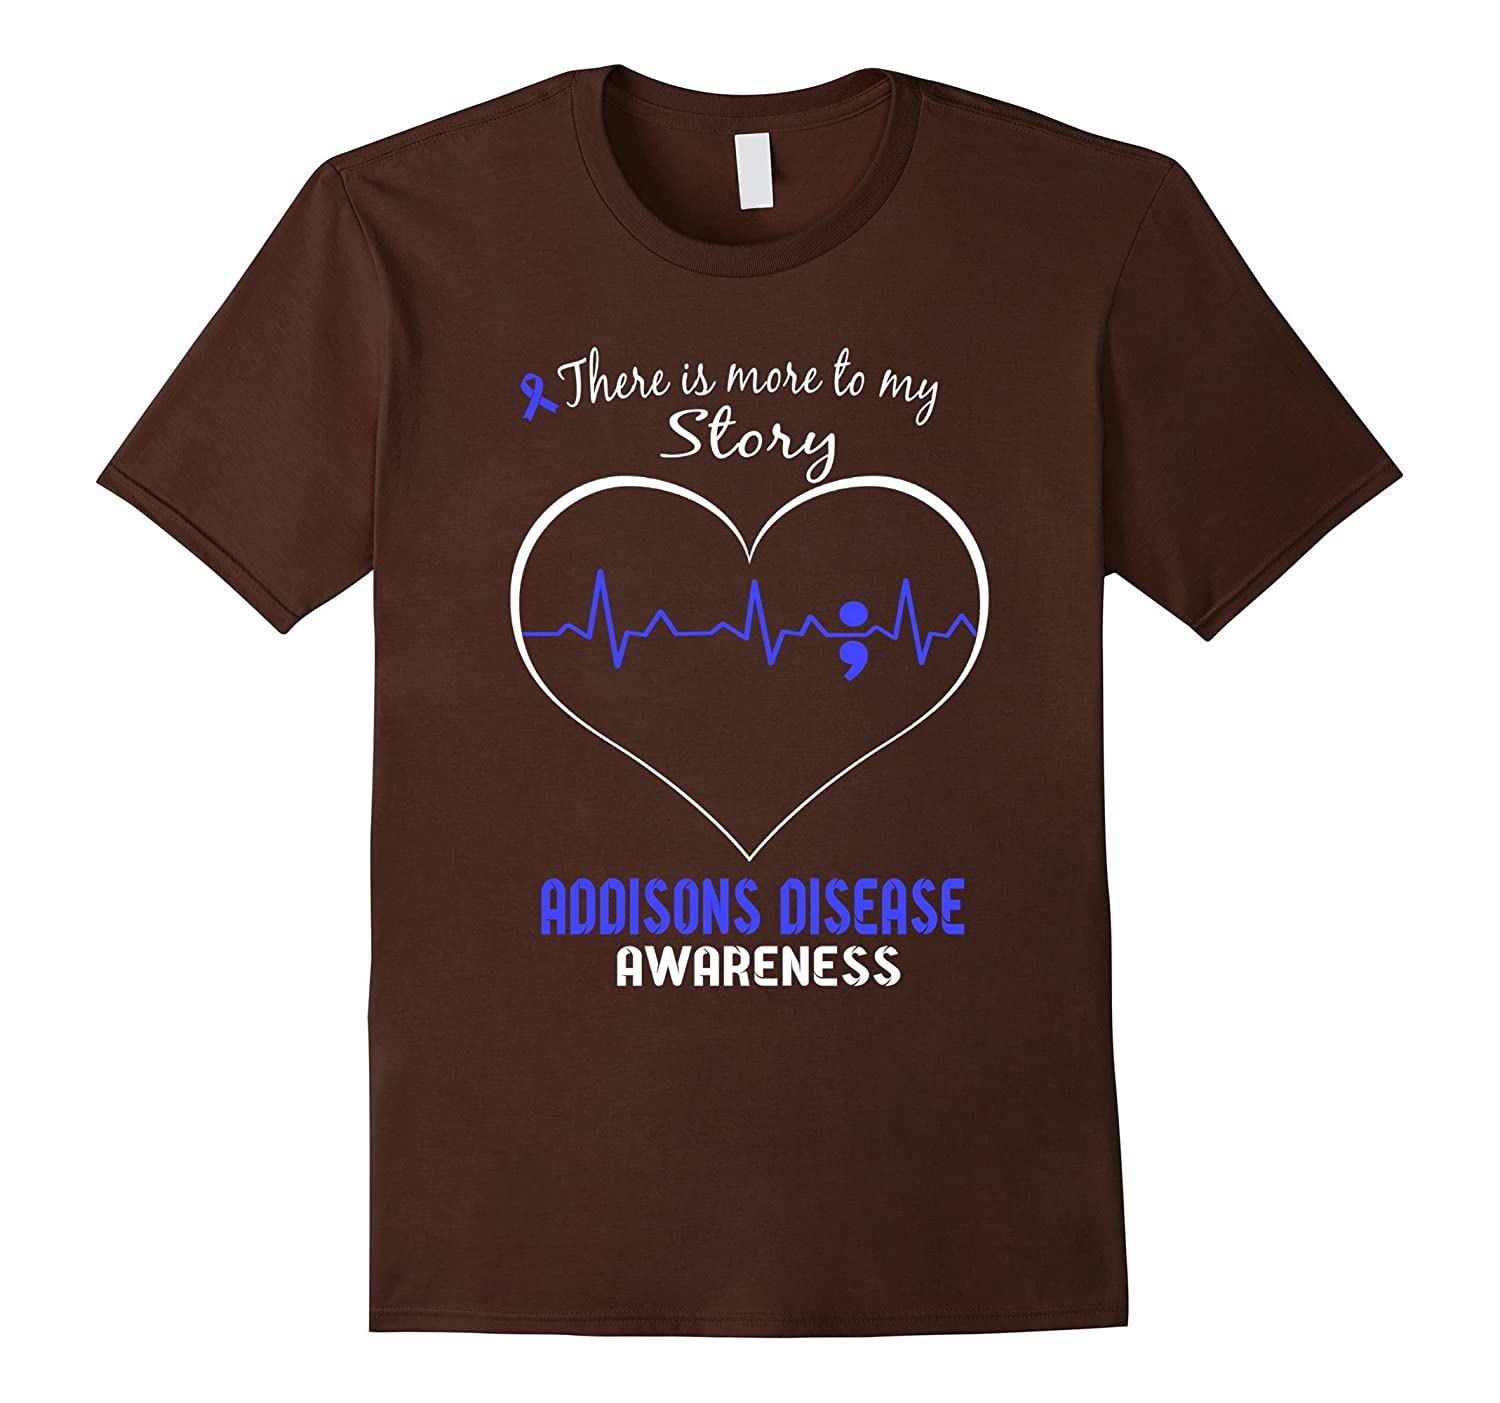 Addisons Disease Awareness Shirt – There is More To My Story